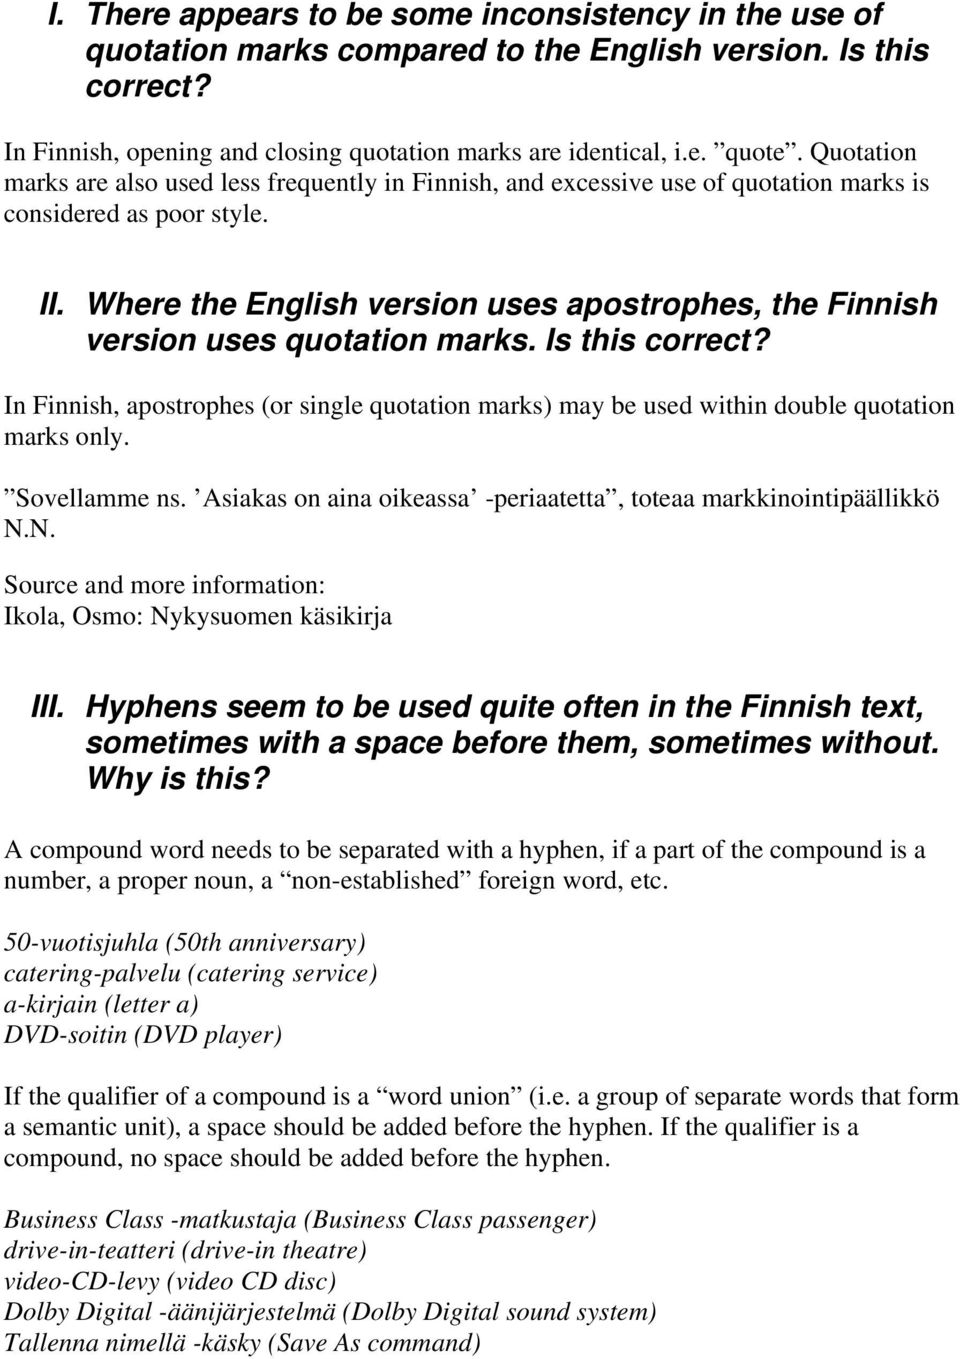 Where the English version uses apostrophes, the Finnish version uses quotation marks. Is this correct?